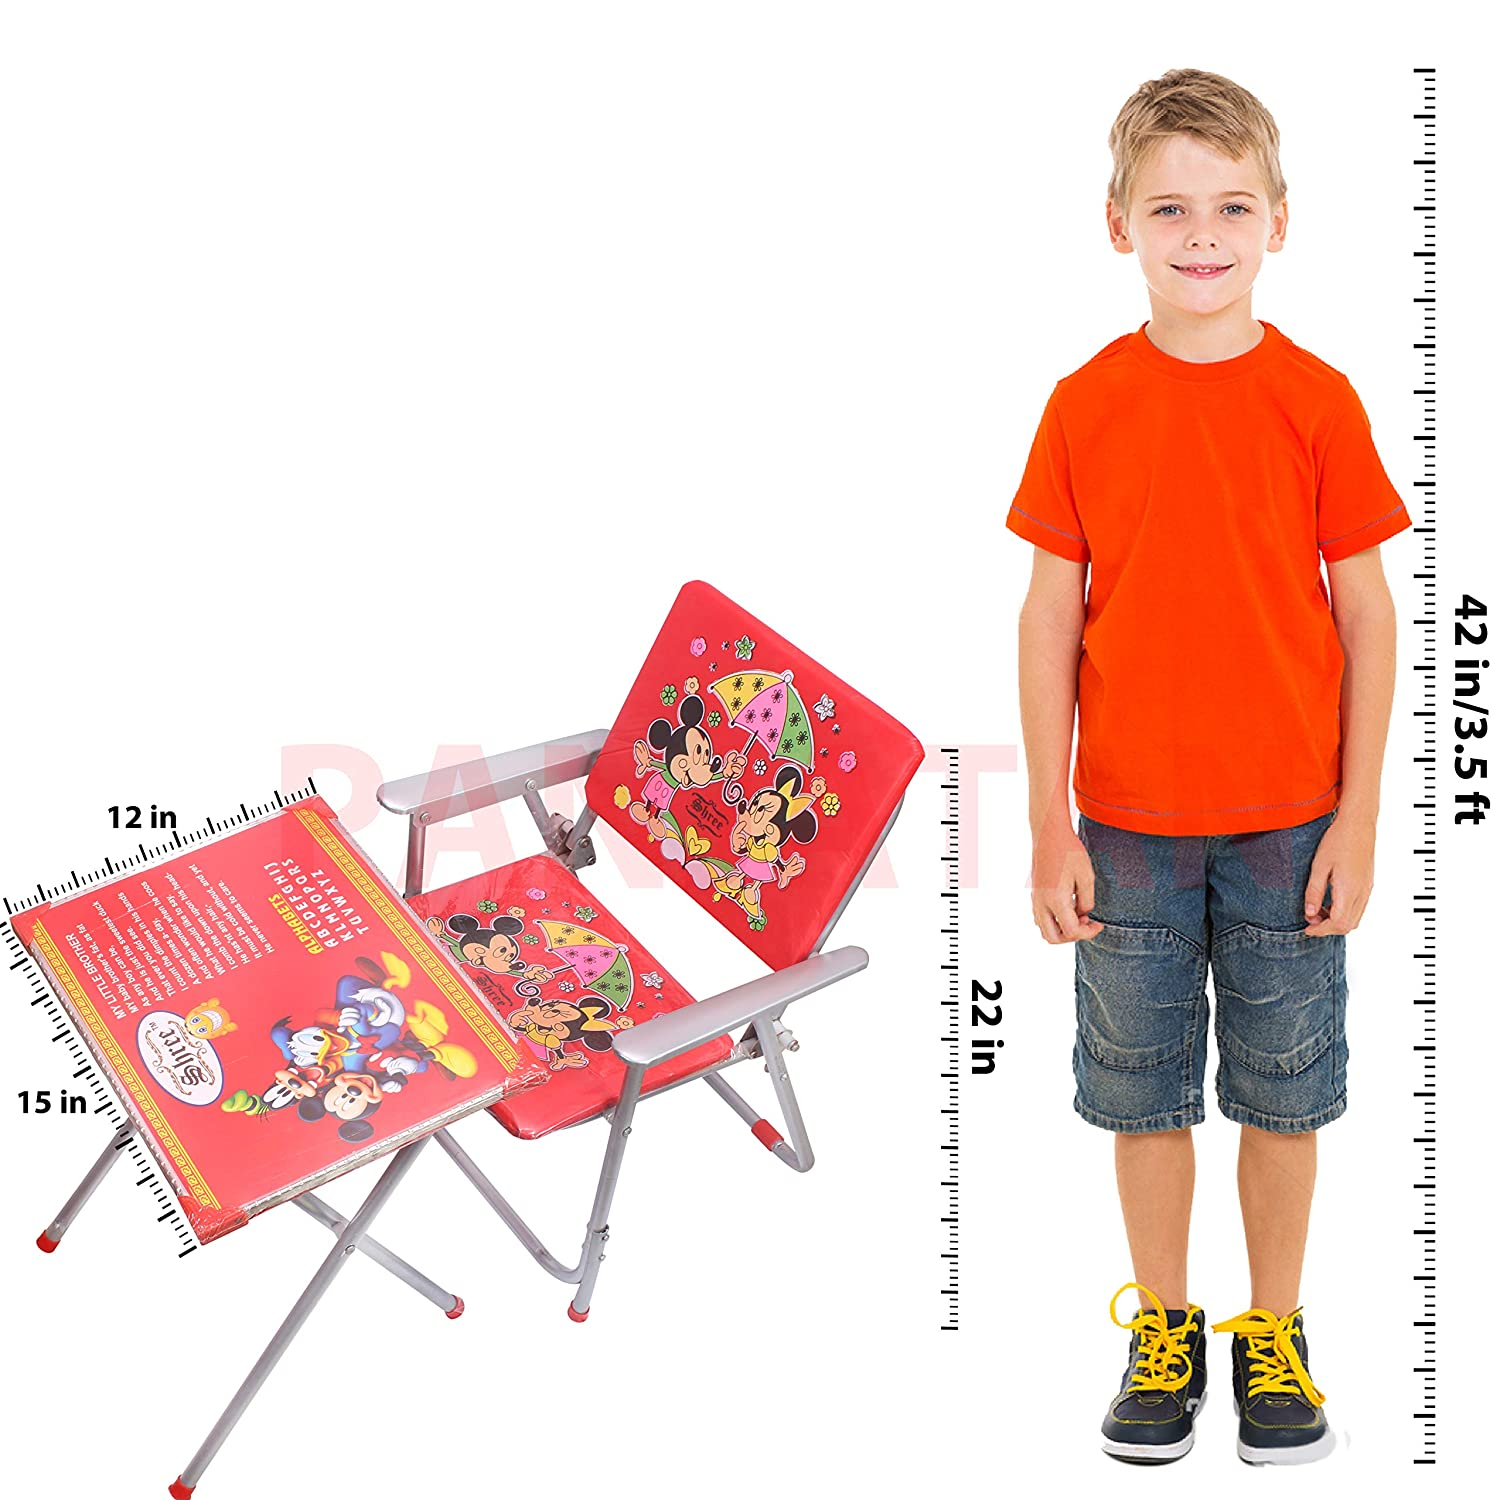 Buy Panjatan Kiddo Study Chair Table Set For Kids Age Between 2 To 6 Years Old ColorBlue Online At Low Prices In India